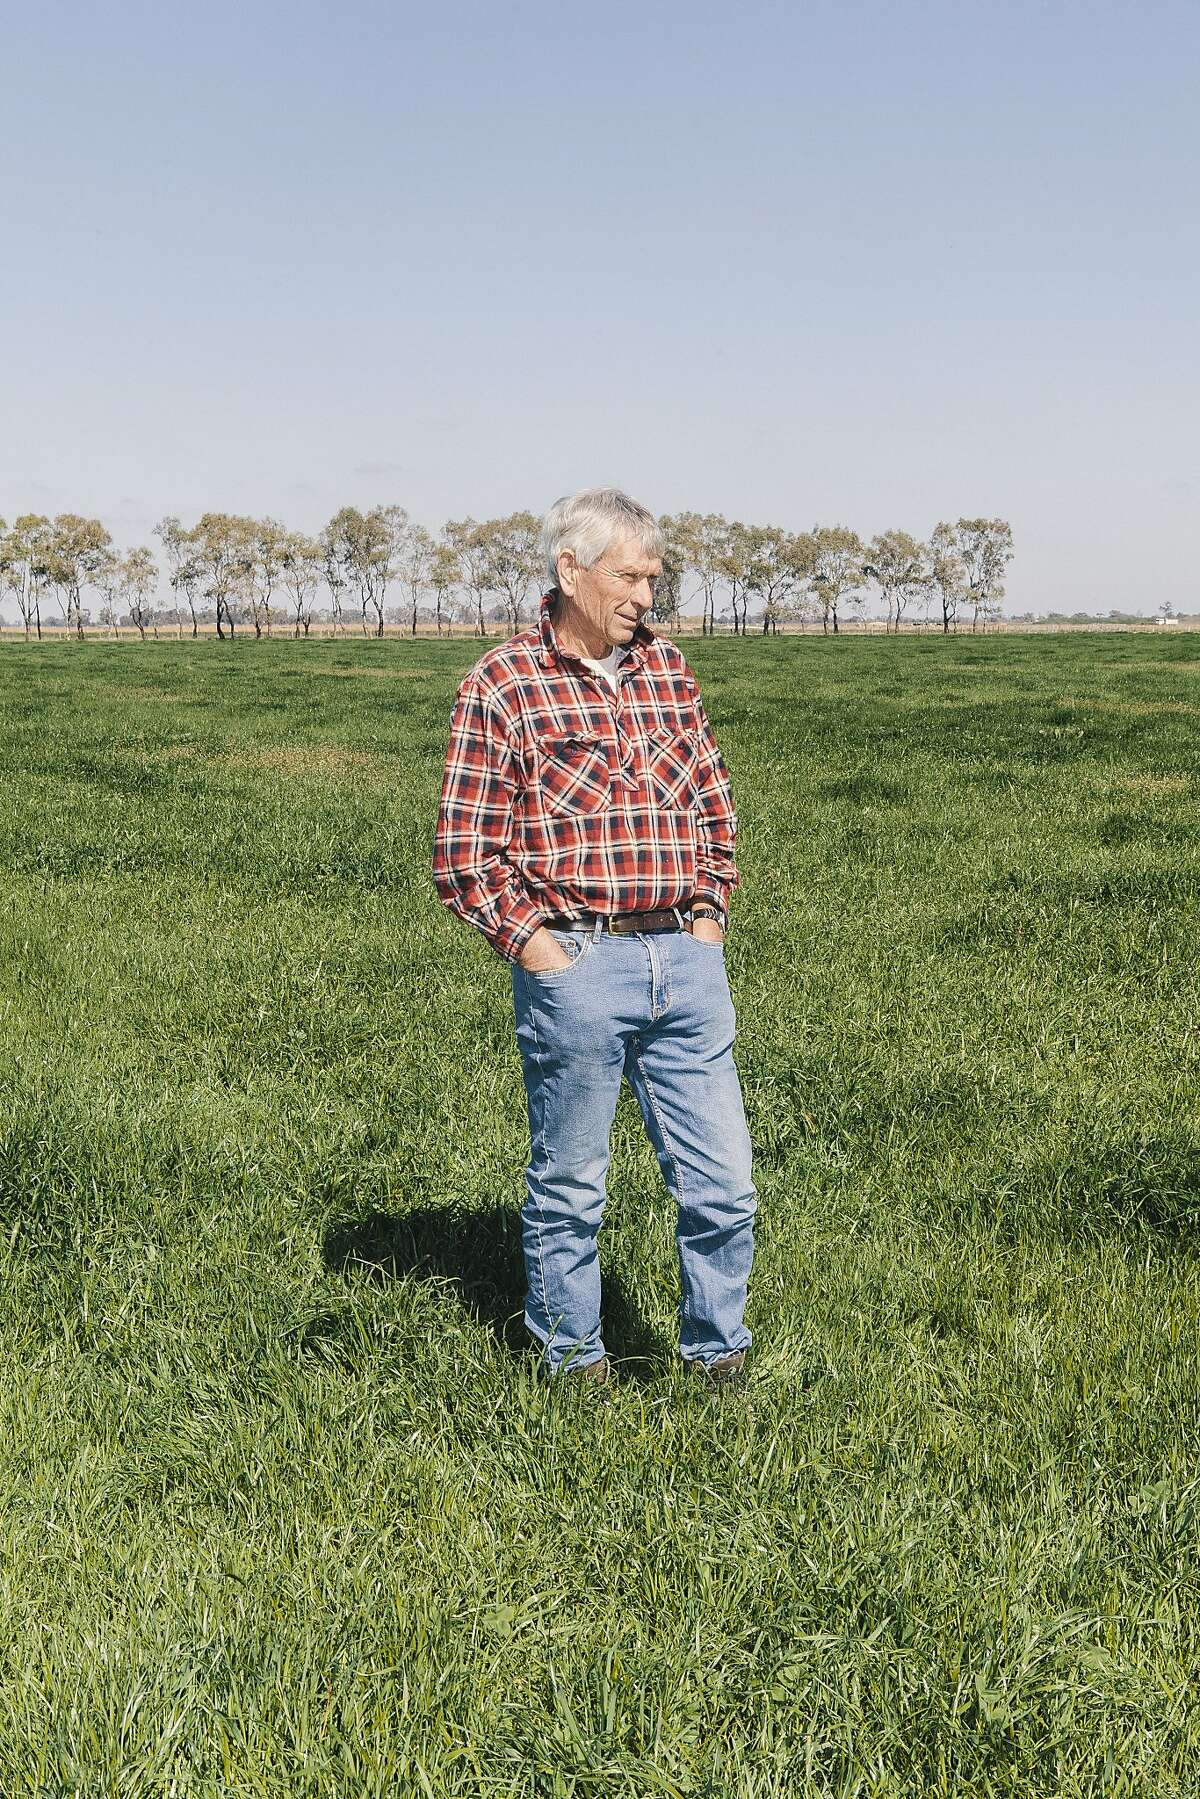 Russell Pell, owner of the dairy Pell Family Farms in Wyuna, Victoria, Australia, September 1, 2015.